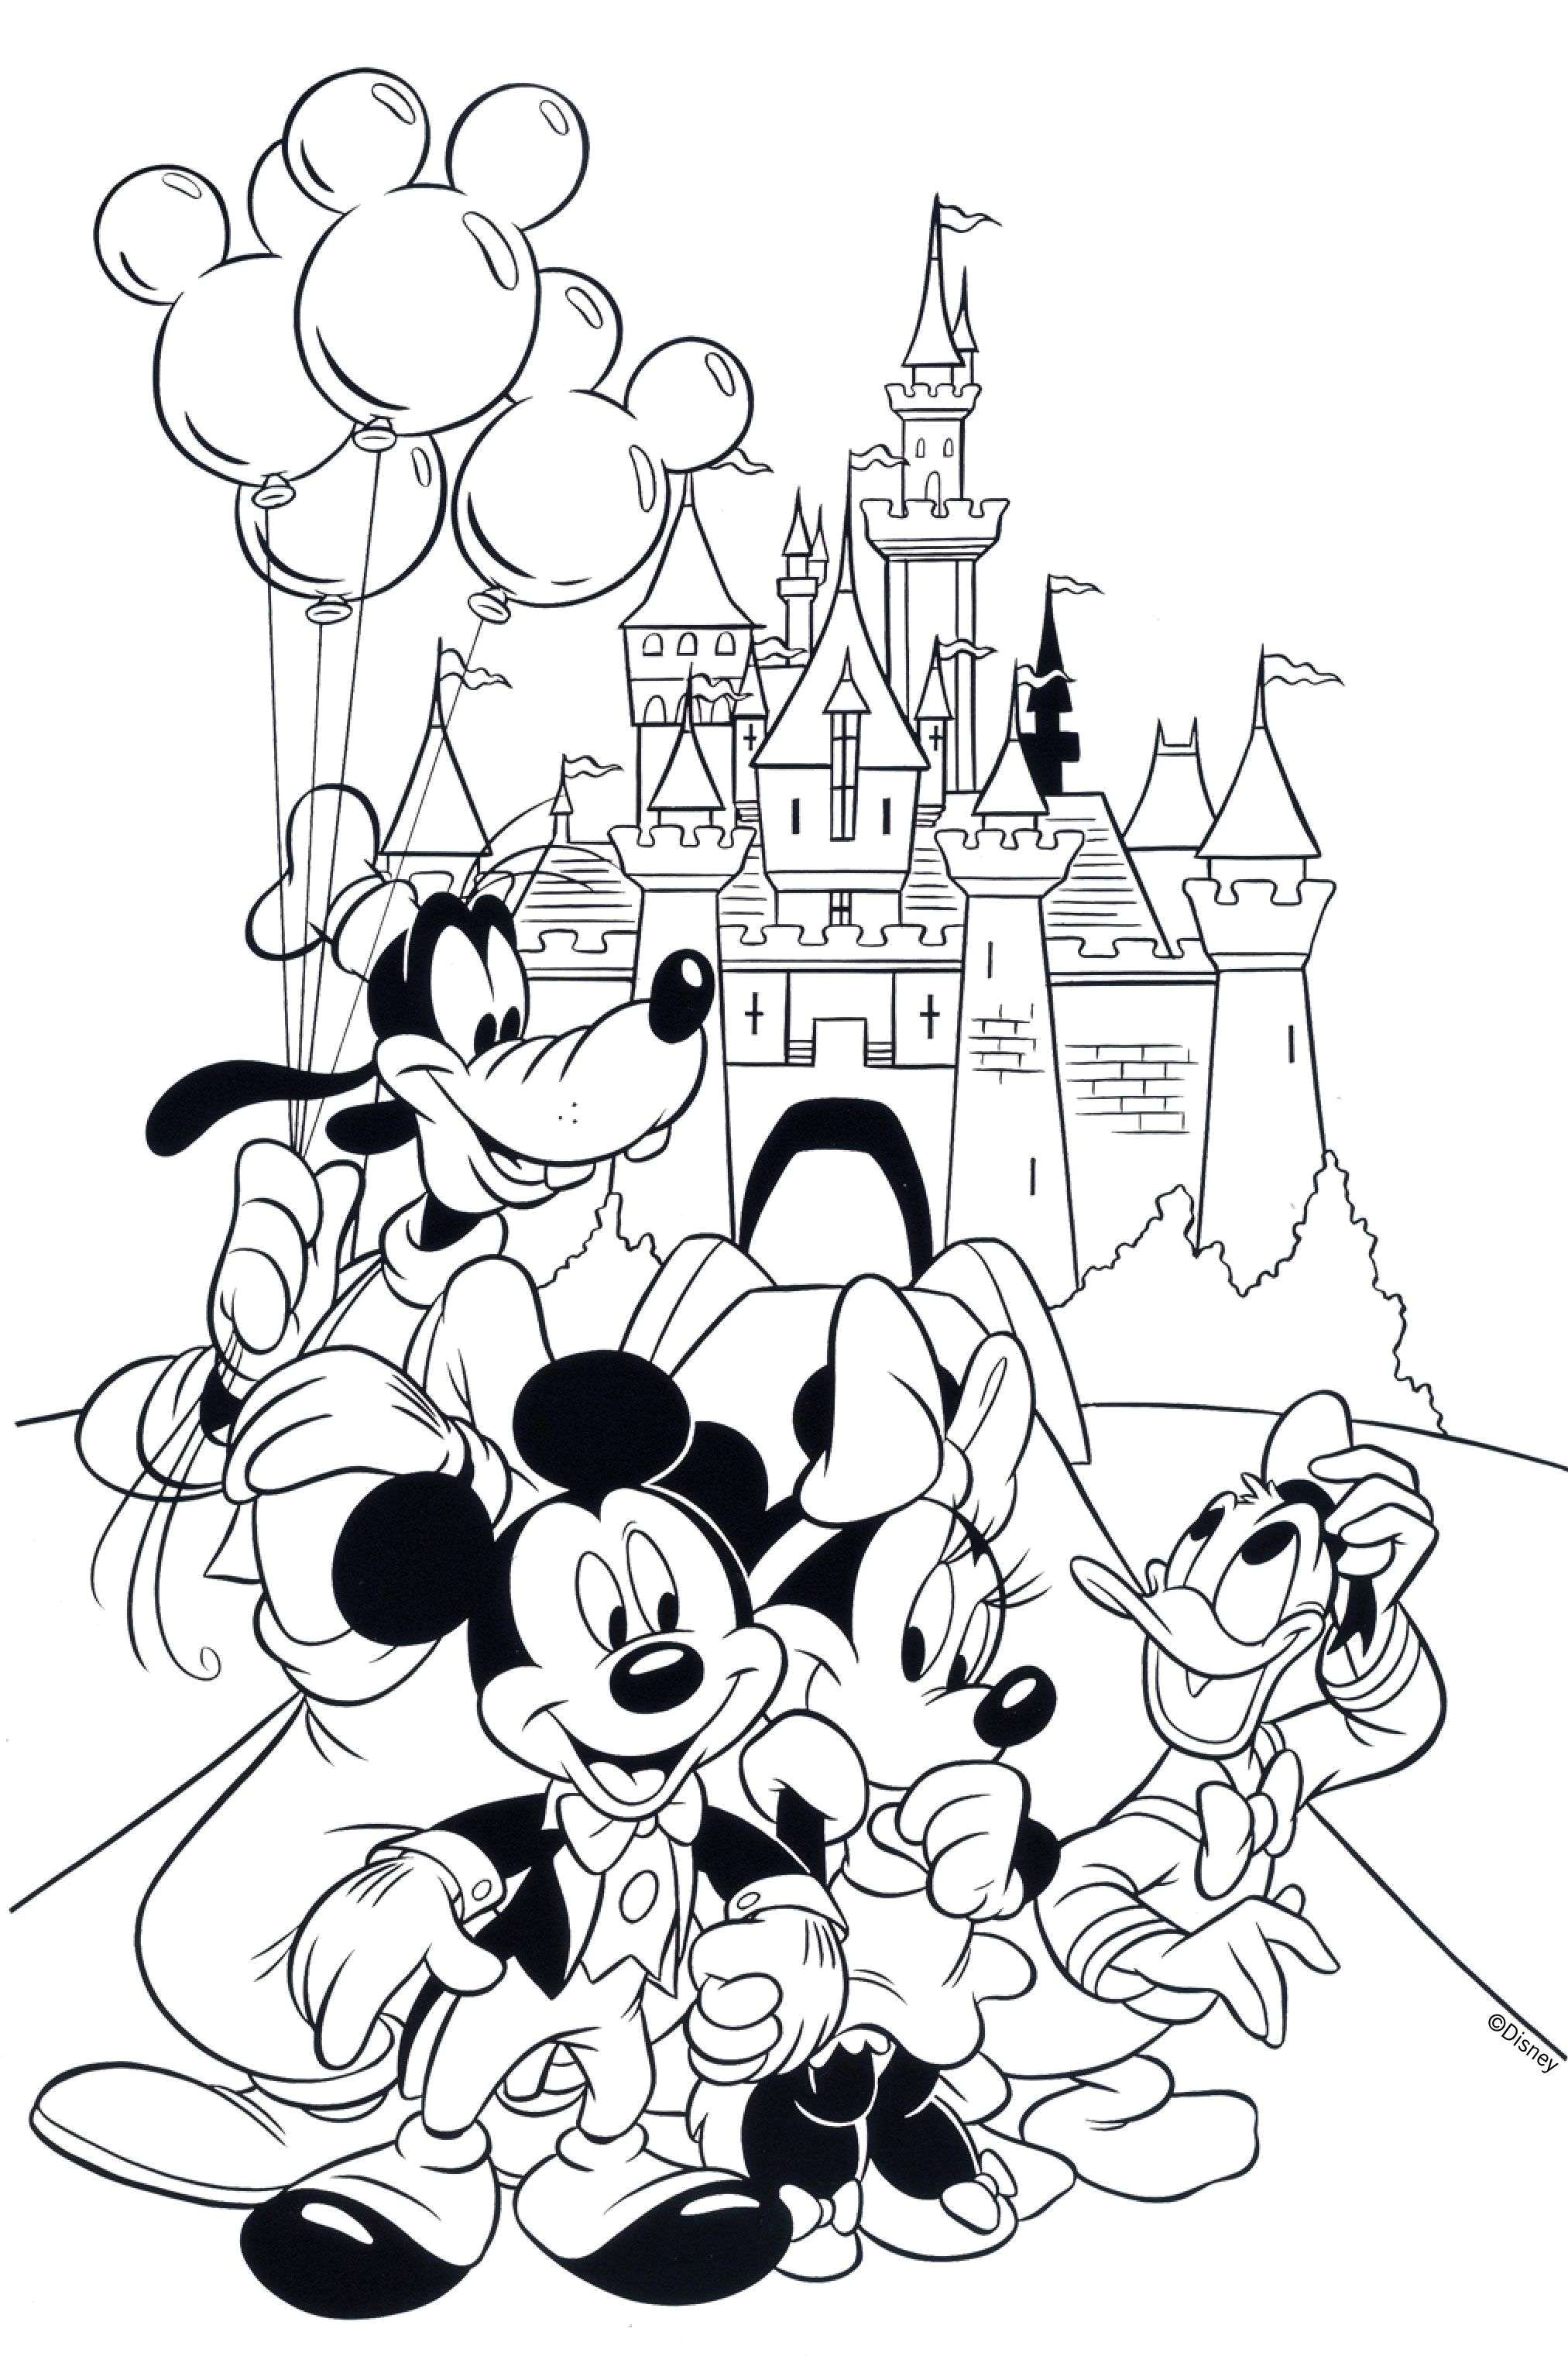 Christmas Mouse Coloring Pages With Mickey Pics To Color Elegant Minnie